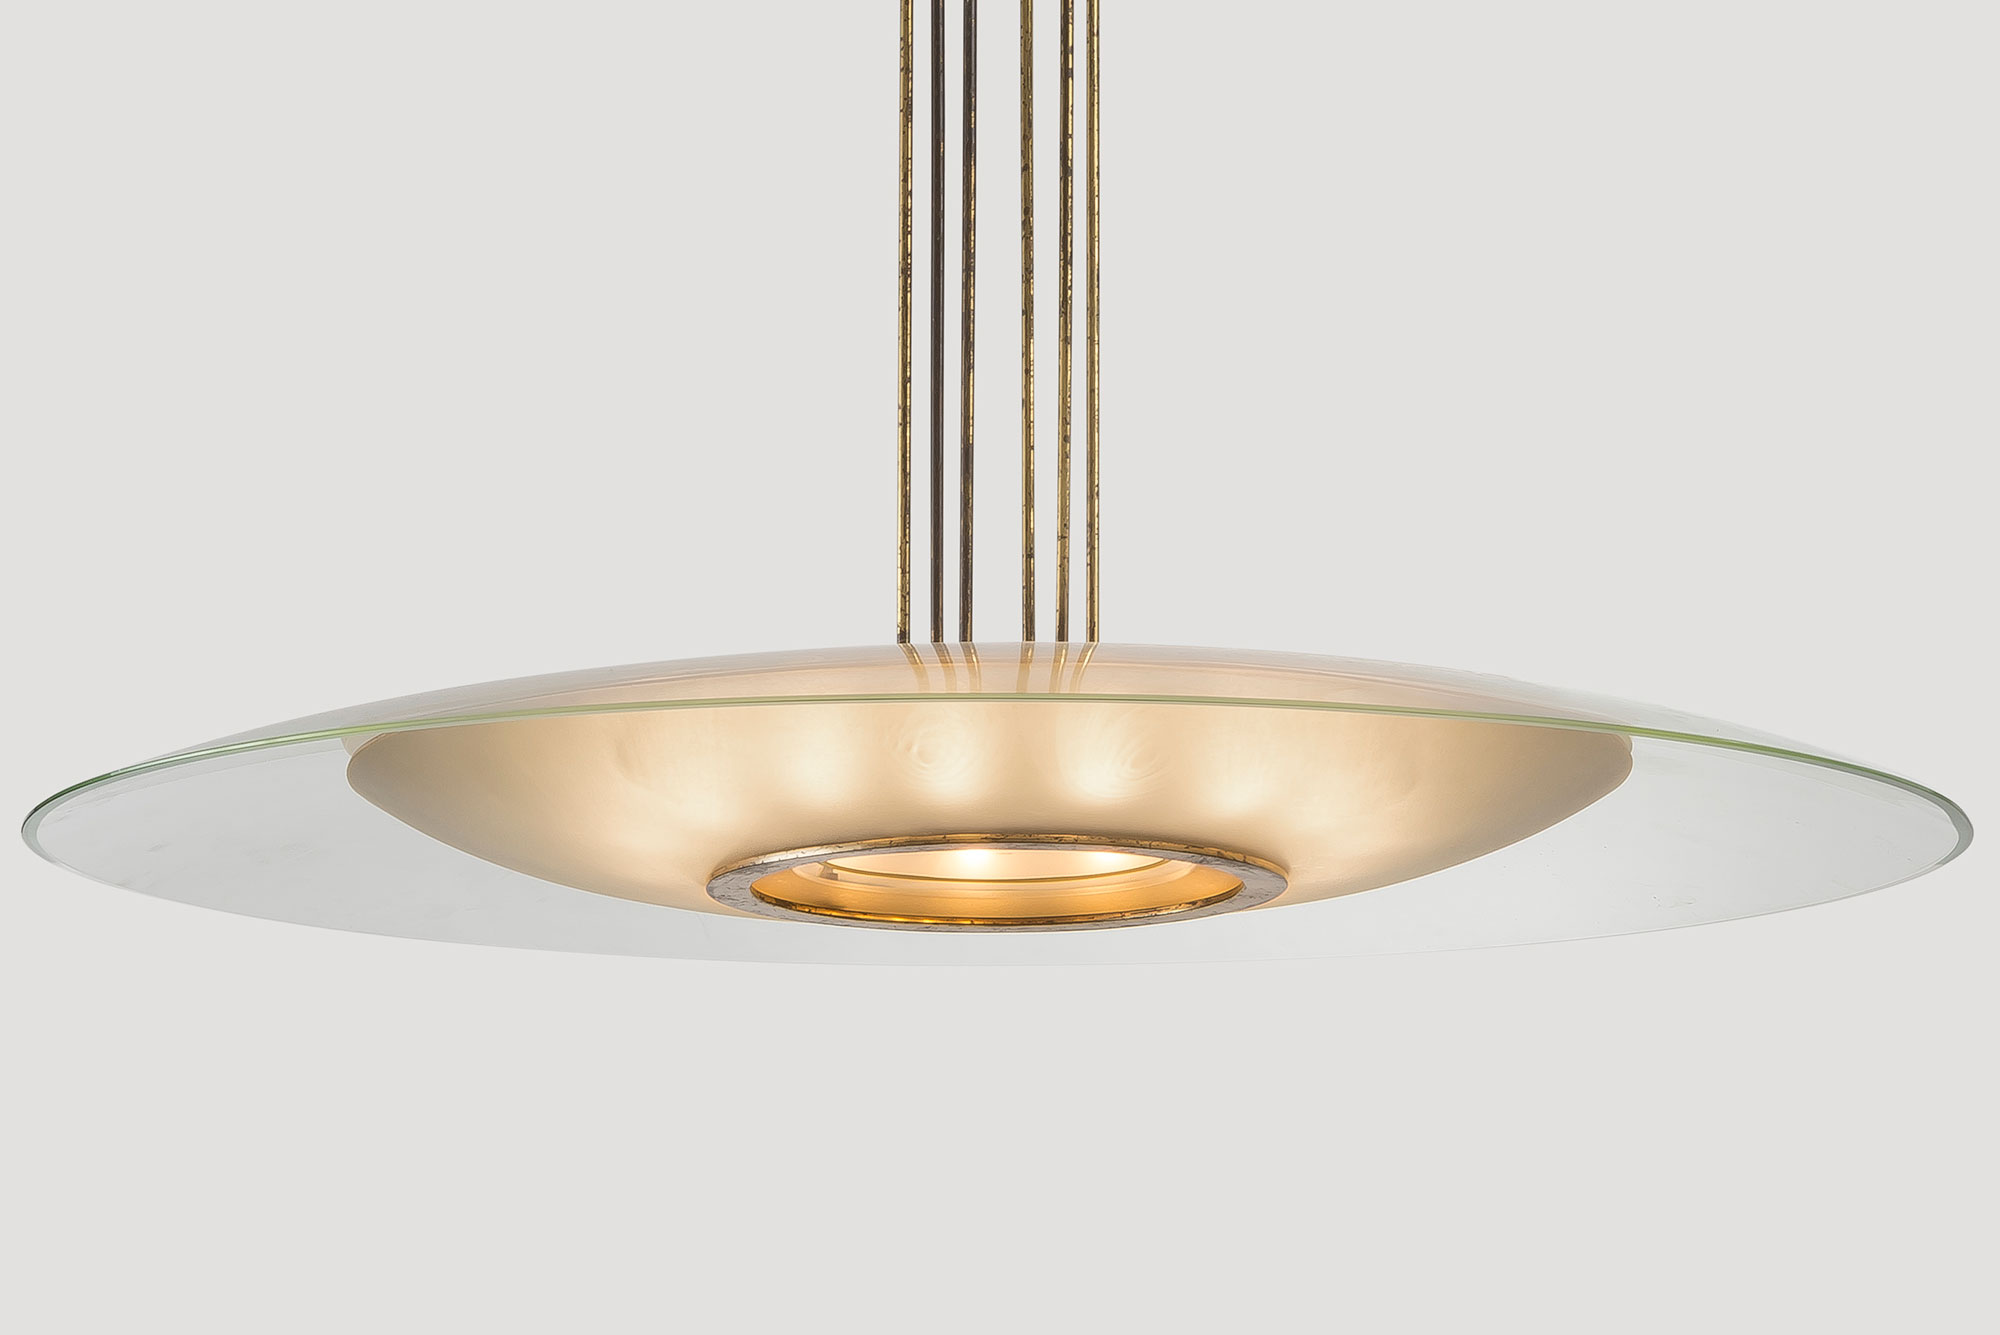 Large glass disk Fontana arte chandelier with lights on at Italian design and furniture gallery Casati Gallery